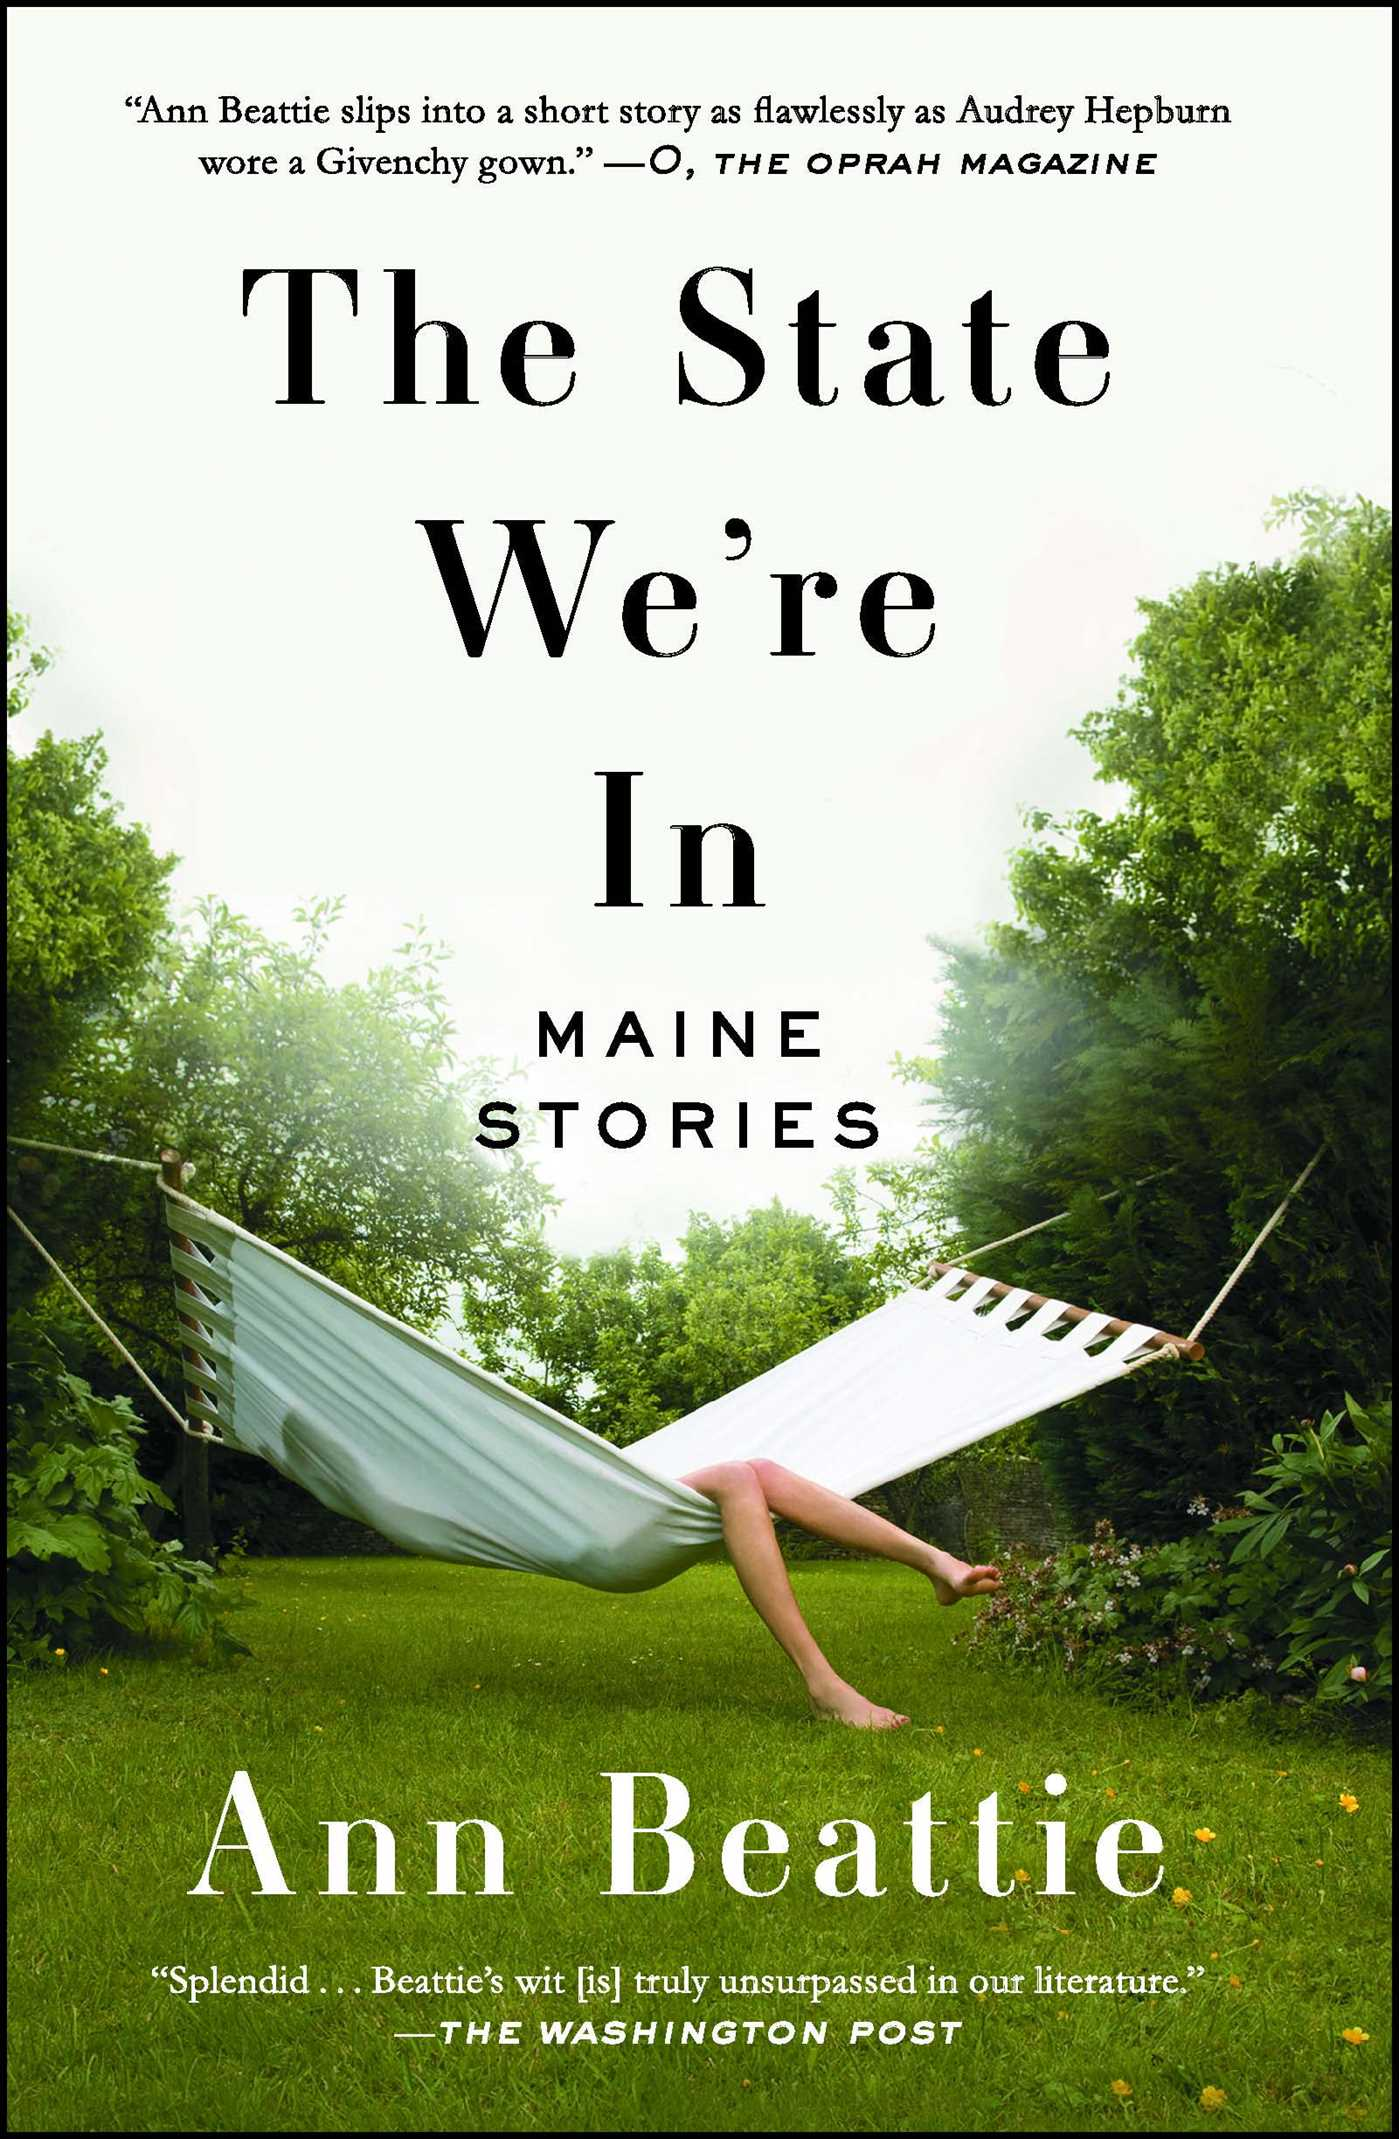 The State We're In Maine Stories